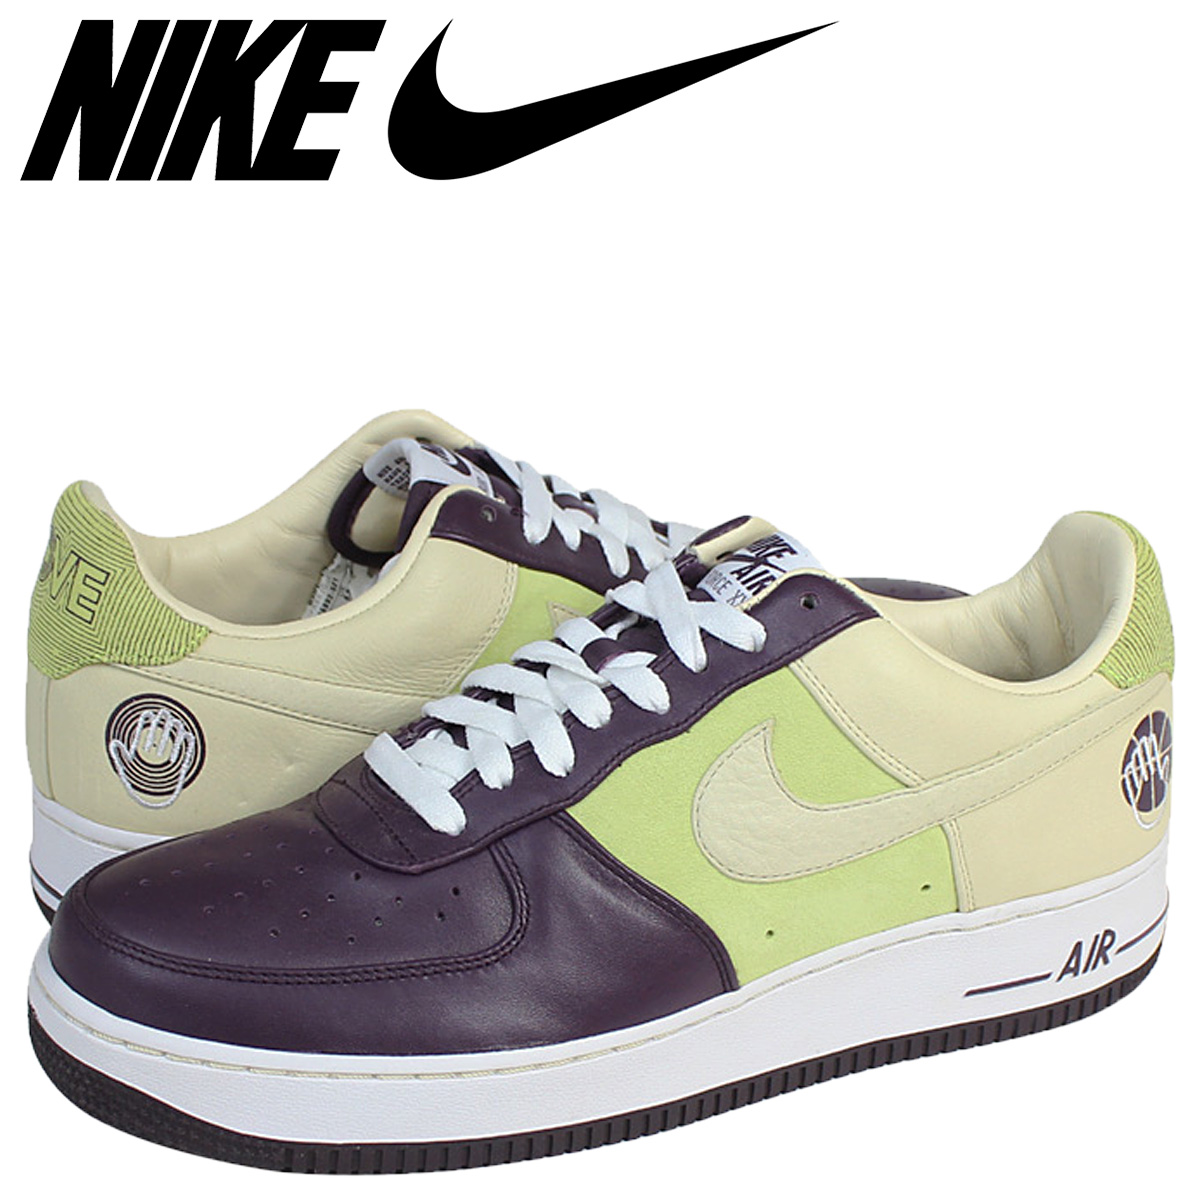 4c659c726f8a6 NIKE Nike air force sneakers AIR FORCE 1 PREMIUM 07 BOBBITO GARCIA air  force 1 premium 07 Bobby Japanese hemlock Lucia 316,892-521 purple men